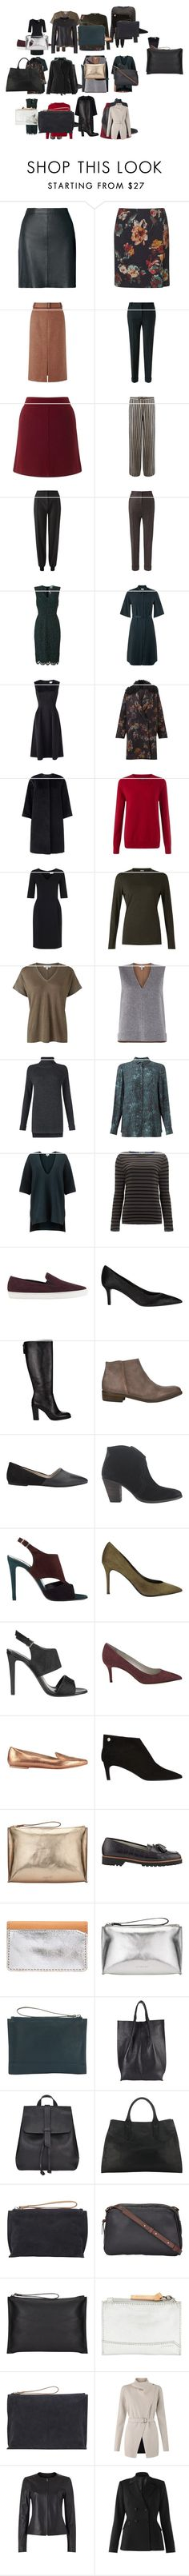 """Untitled #3283"" by luciana-boneca on Polyvore featuring Jigsaw, women's clothing, women's fashion, women, female, woman, misses and juniors"